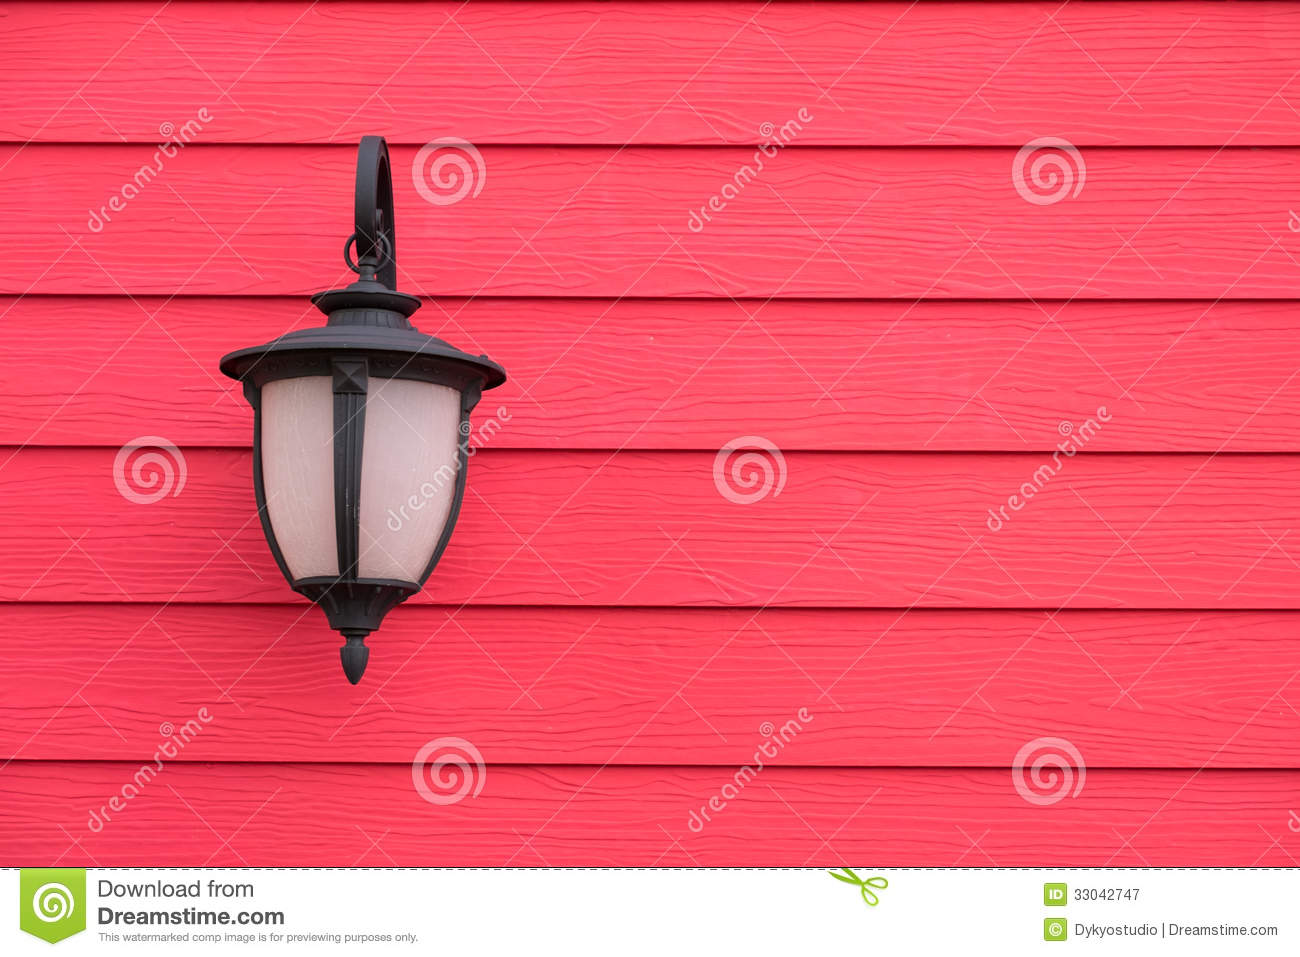 Antique Wood Wall Lamps : Vintage Antique Wall Lamp On Red Wood Wall, For Background With Royalty Free Stock Photography ...